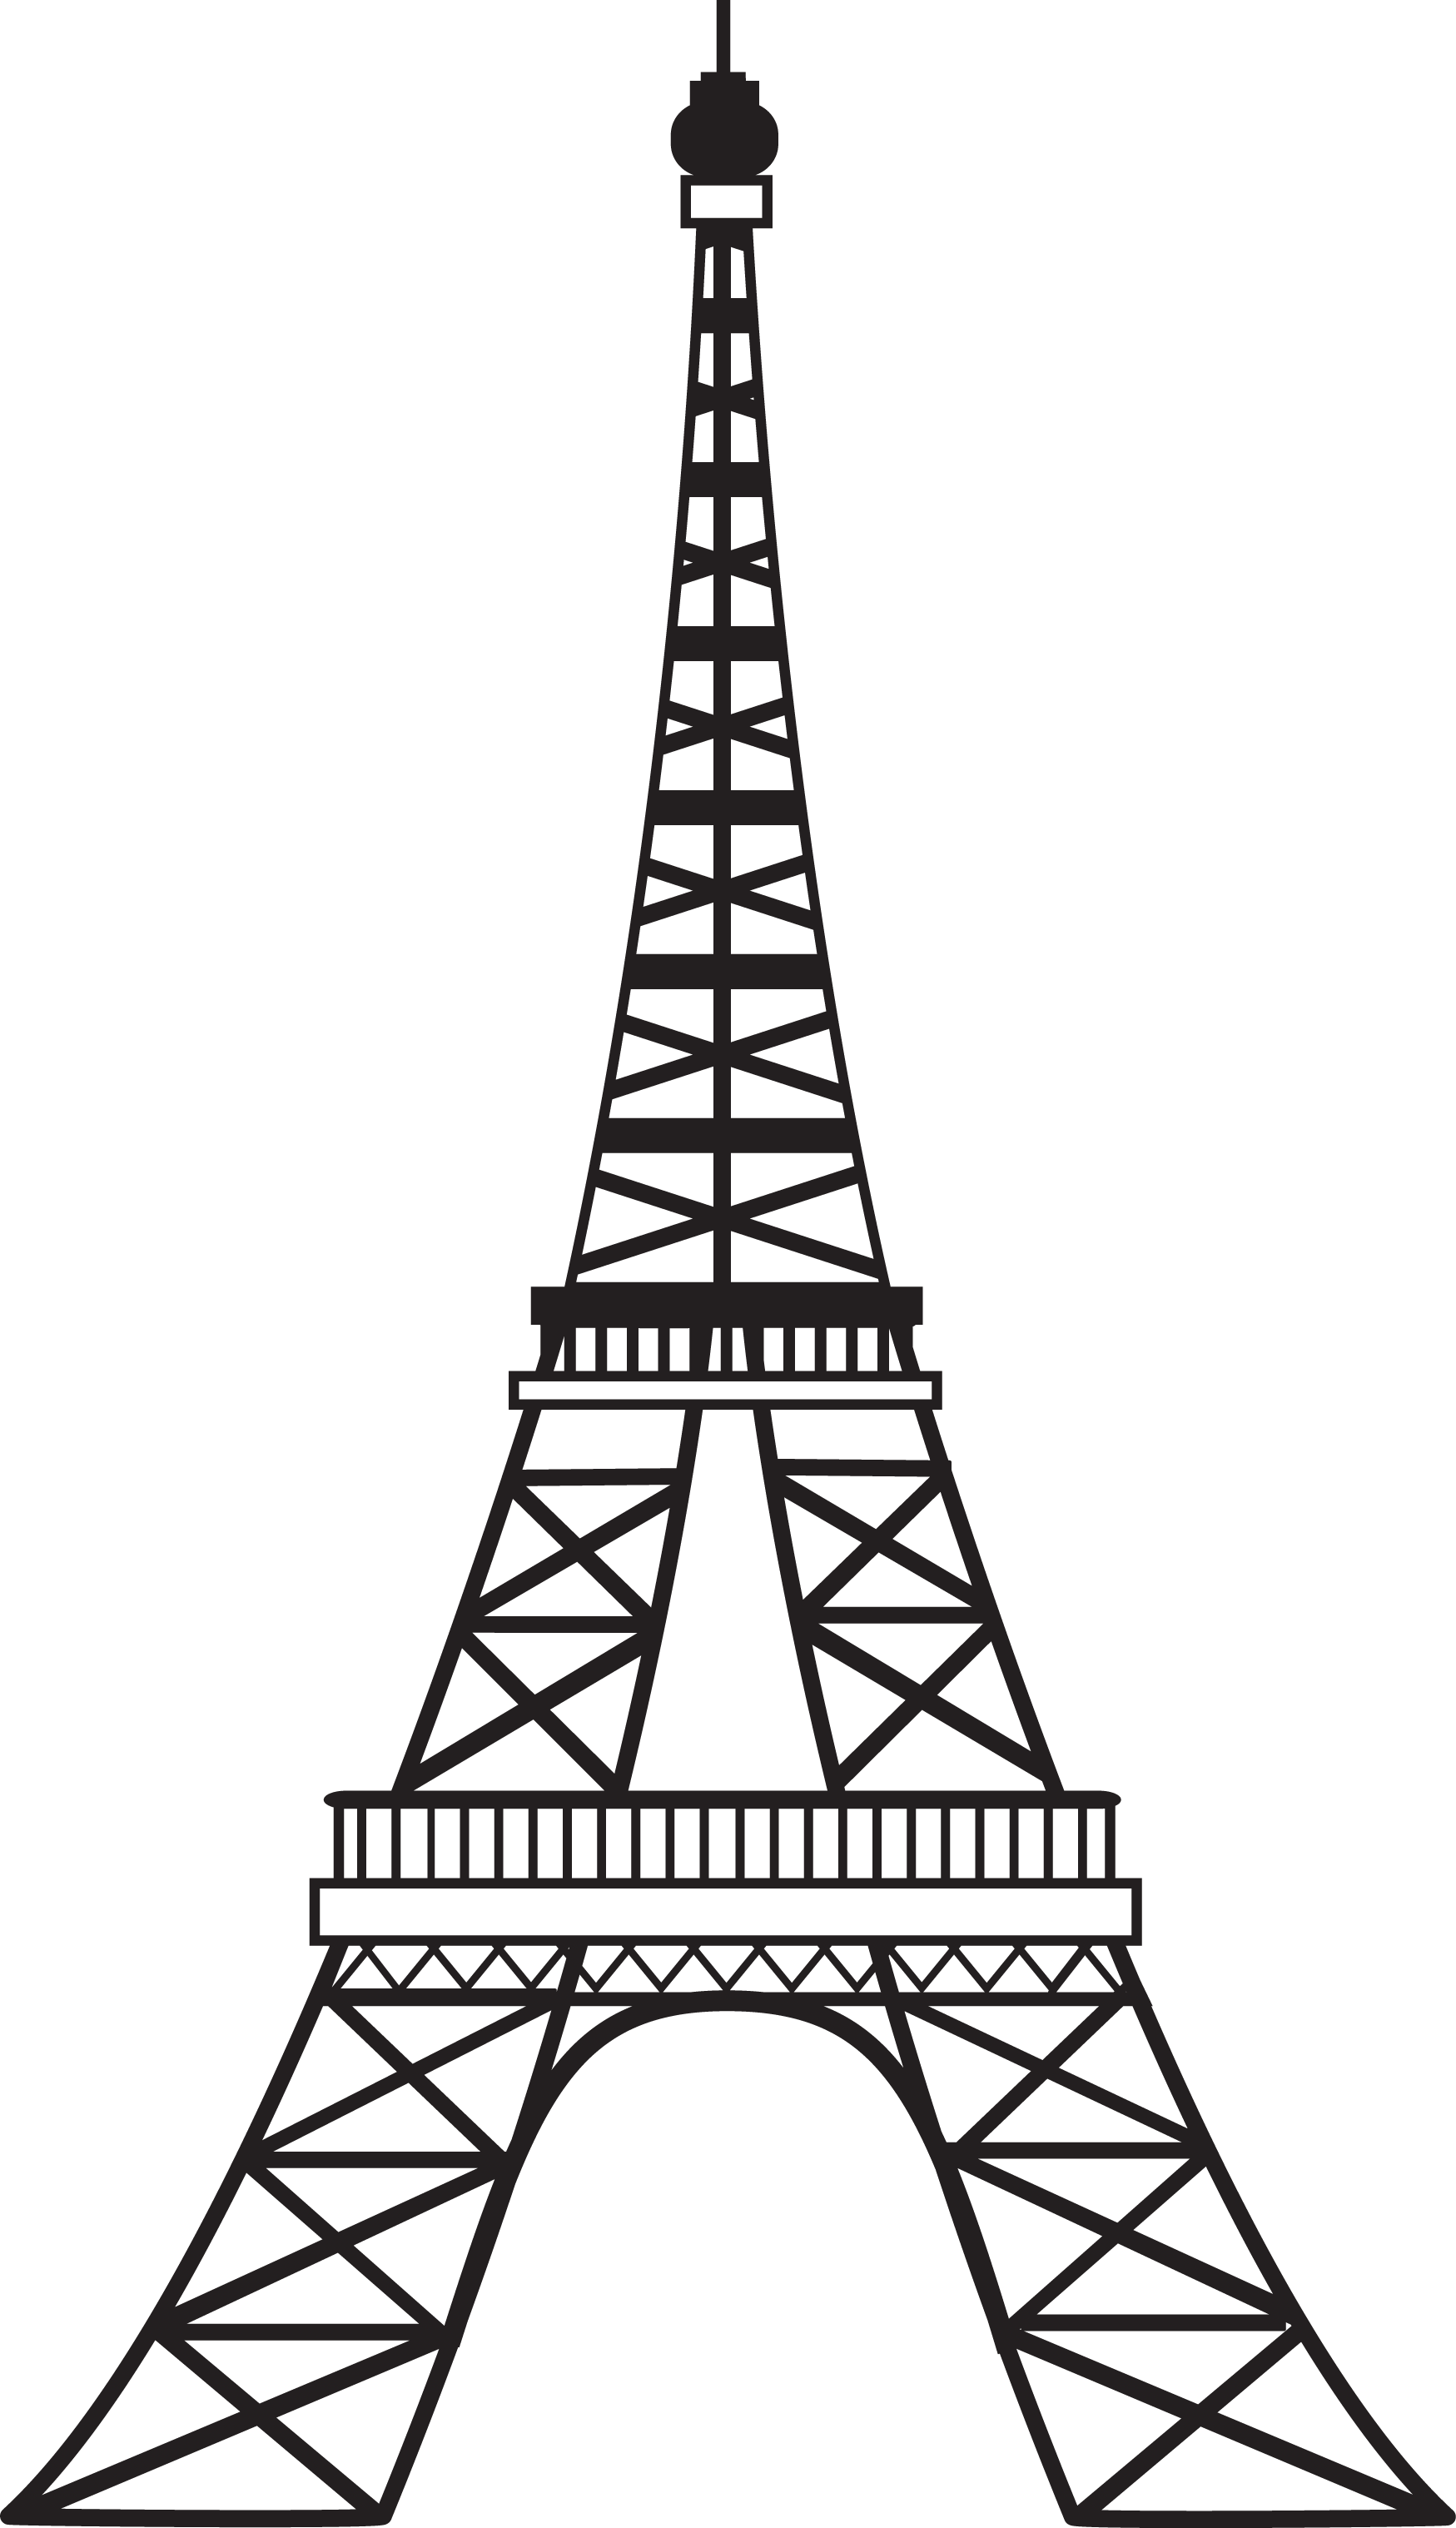 Eiffel tower with crown clipart jpg royalty free 28+ Collection of Eiffel Tower Drawing Images   High quality, free ... jpg royalty free